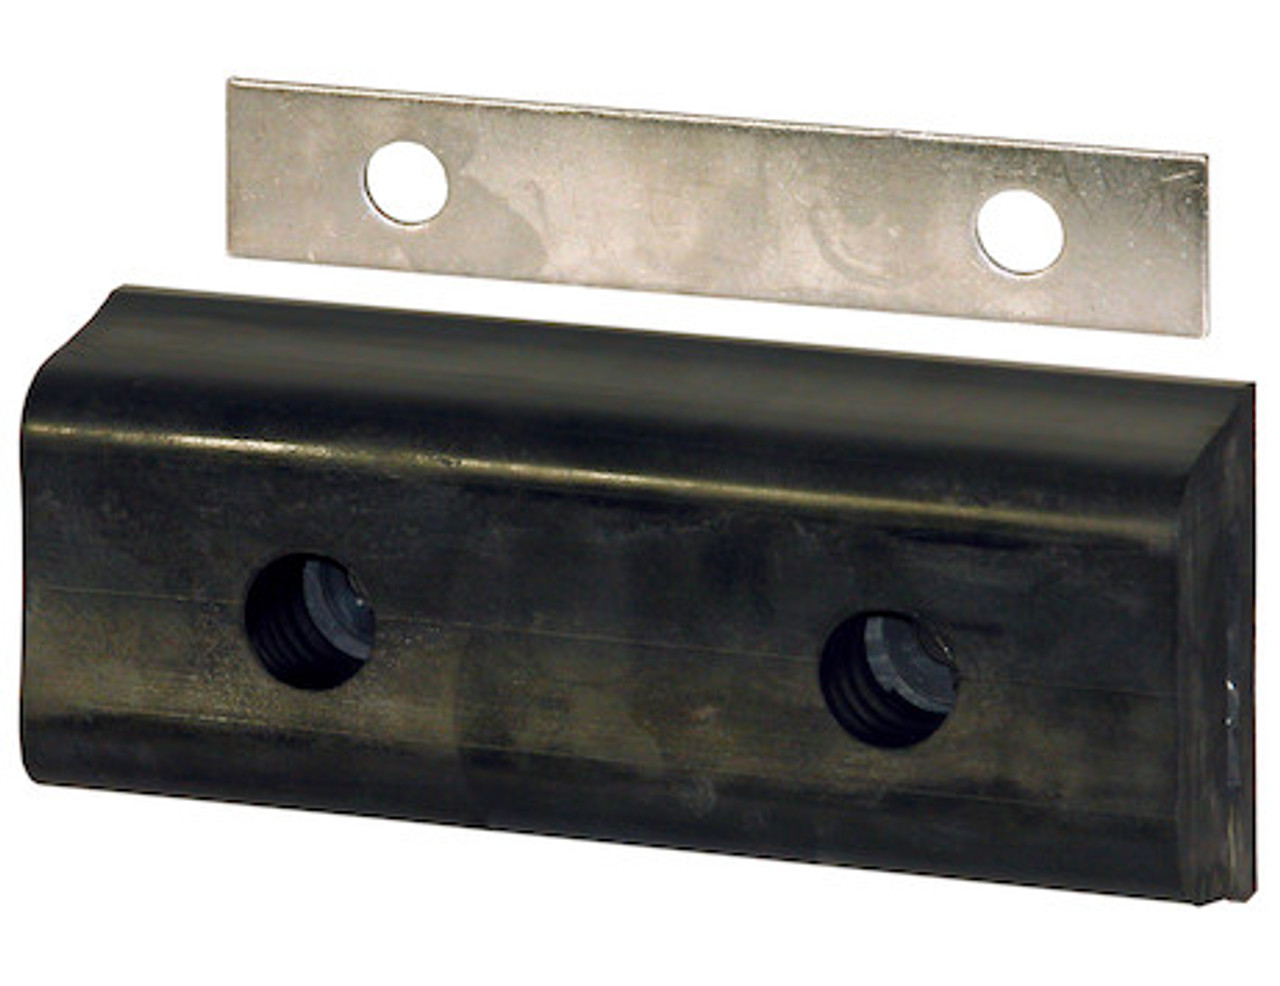 4 x 3-3//4 x 6 Inch Long Buyers Products Extruded Rubber D-Shaped Bumper with 2 Holes